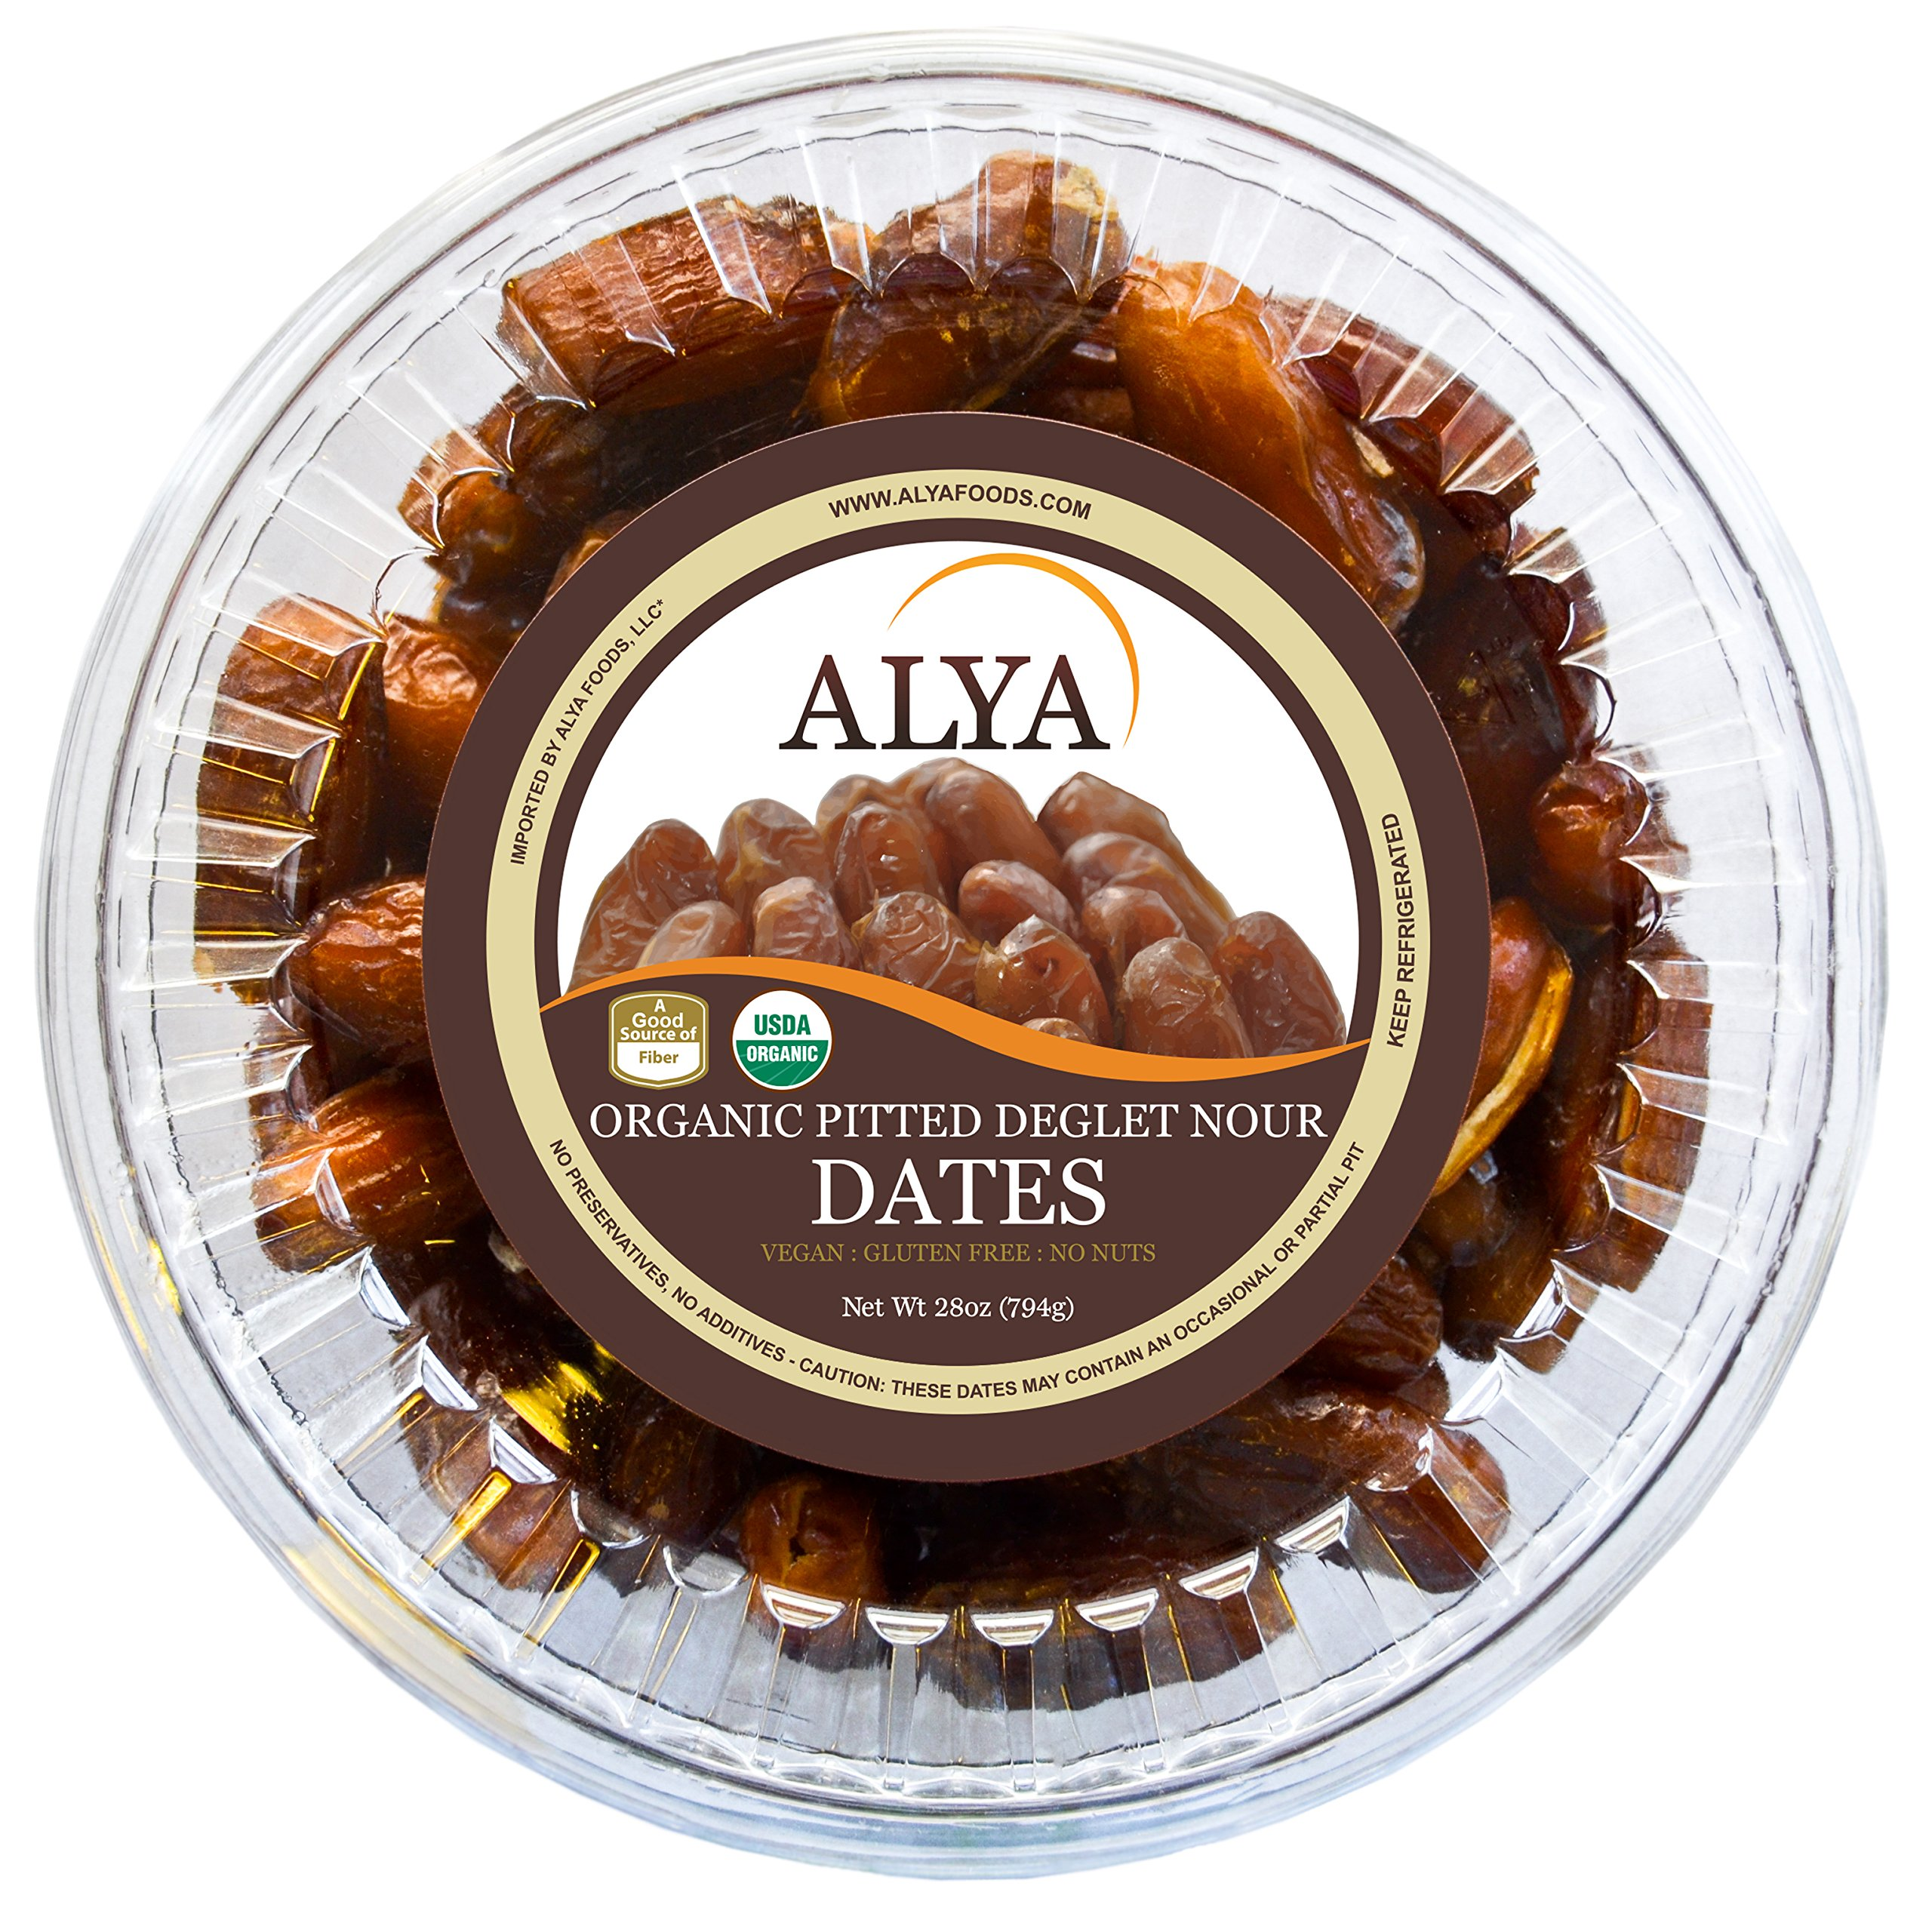 Organic Dates, Pitted, Deglet Noor (28 Ounces) by ALYA (Image #1)